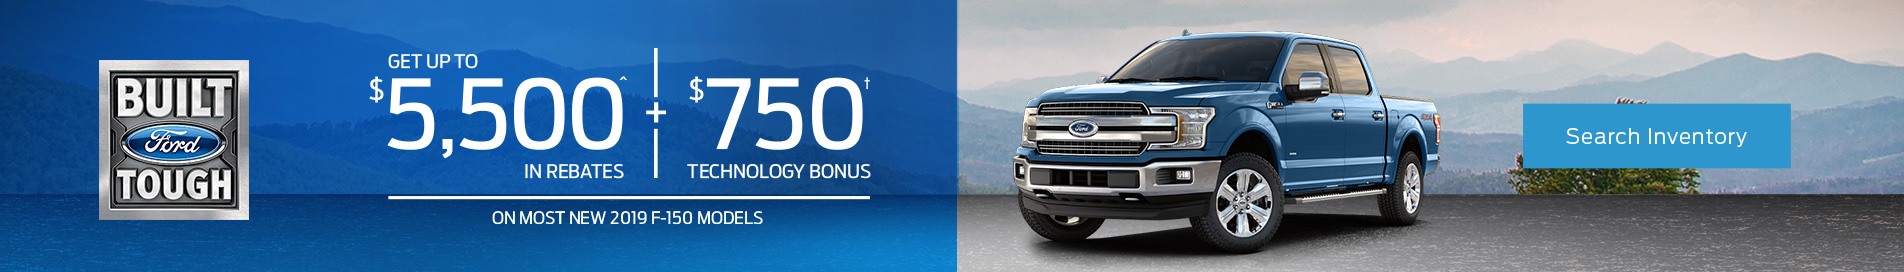 April Ford incentive offer